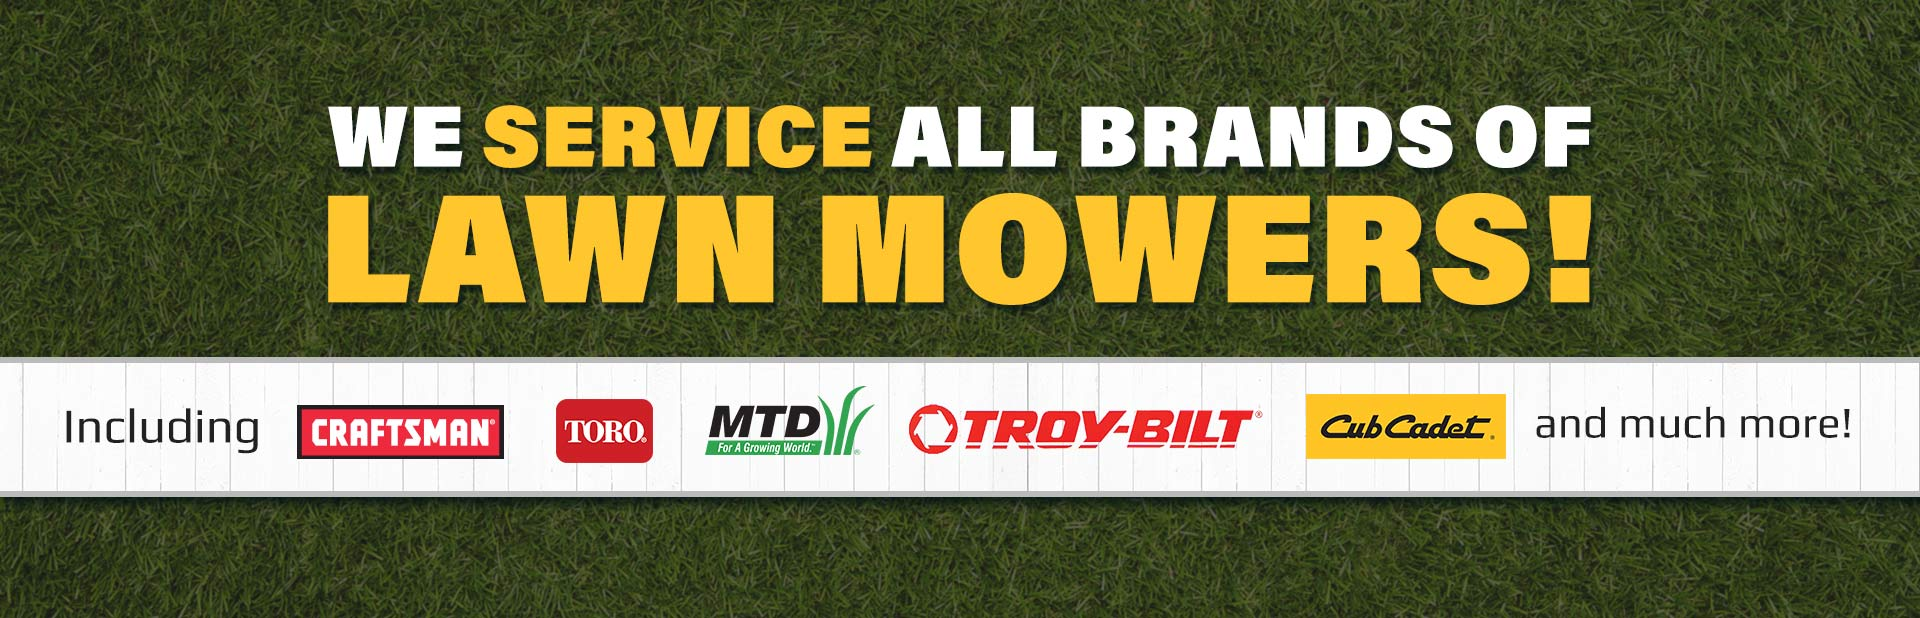 We service all brands of lawn mowers, including Craftsman, Toro, MTD, Troy-Bilt, Cub Cadet, and much more!